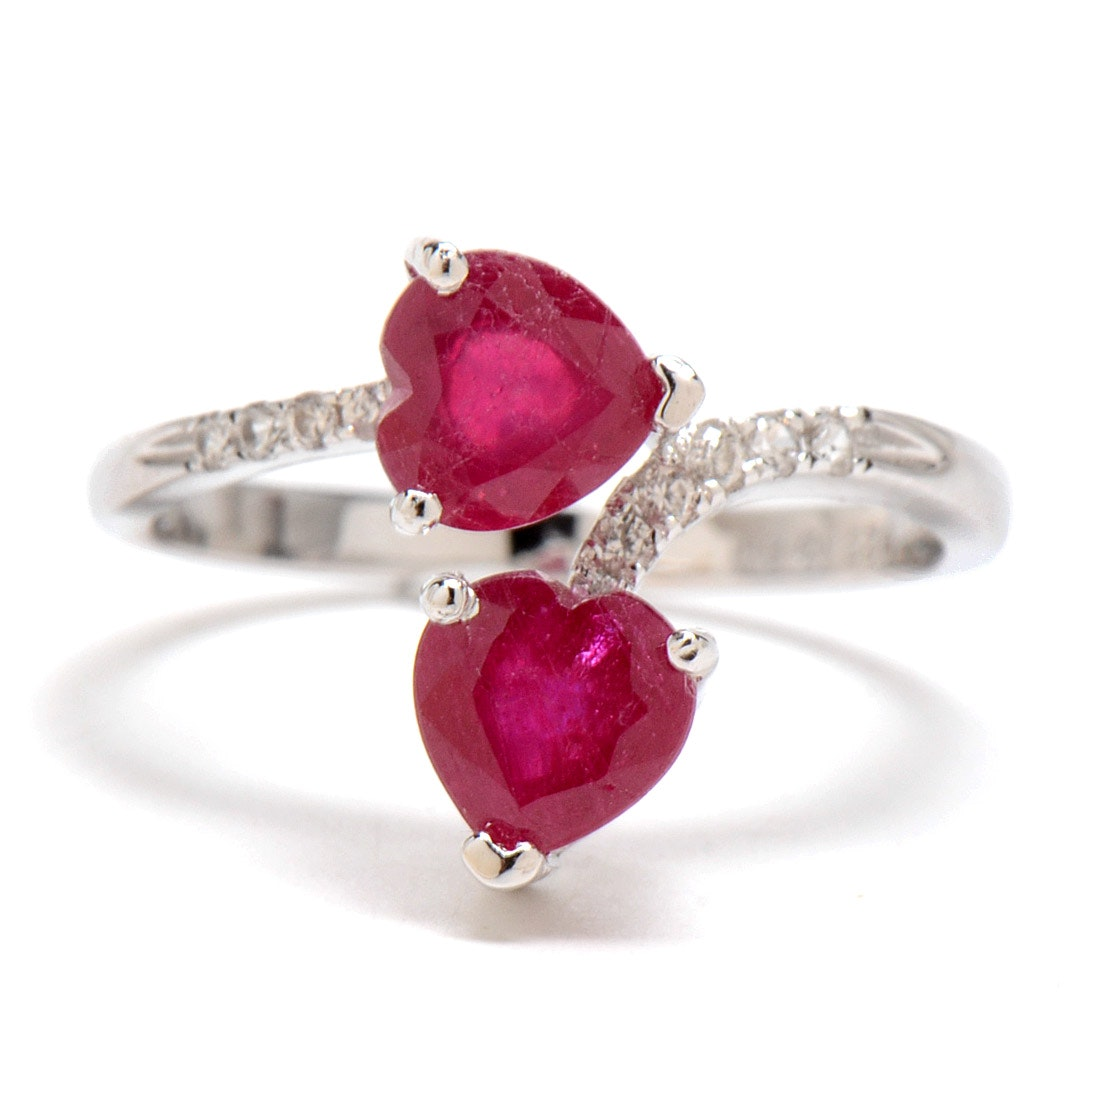 Sterling Silver Heart Shape Ring with Glass Filled Rubies and White Zircons